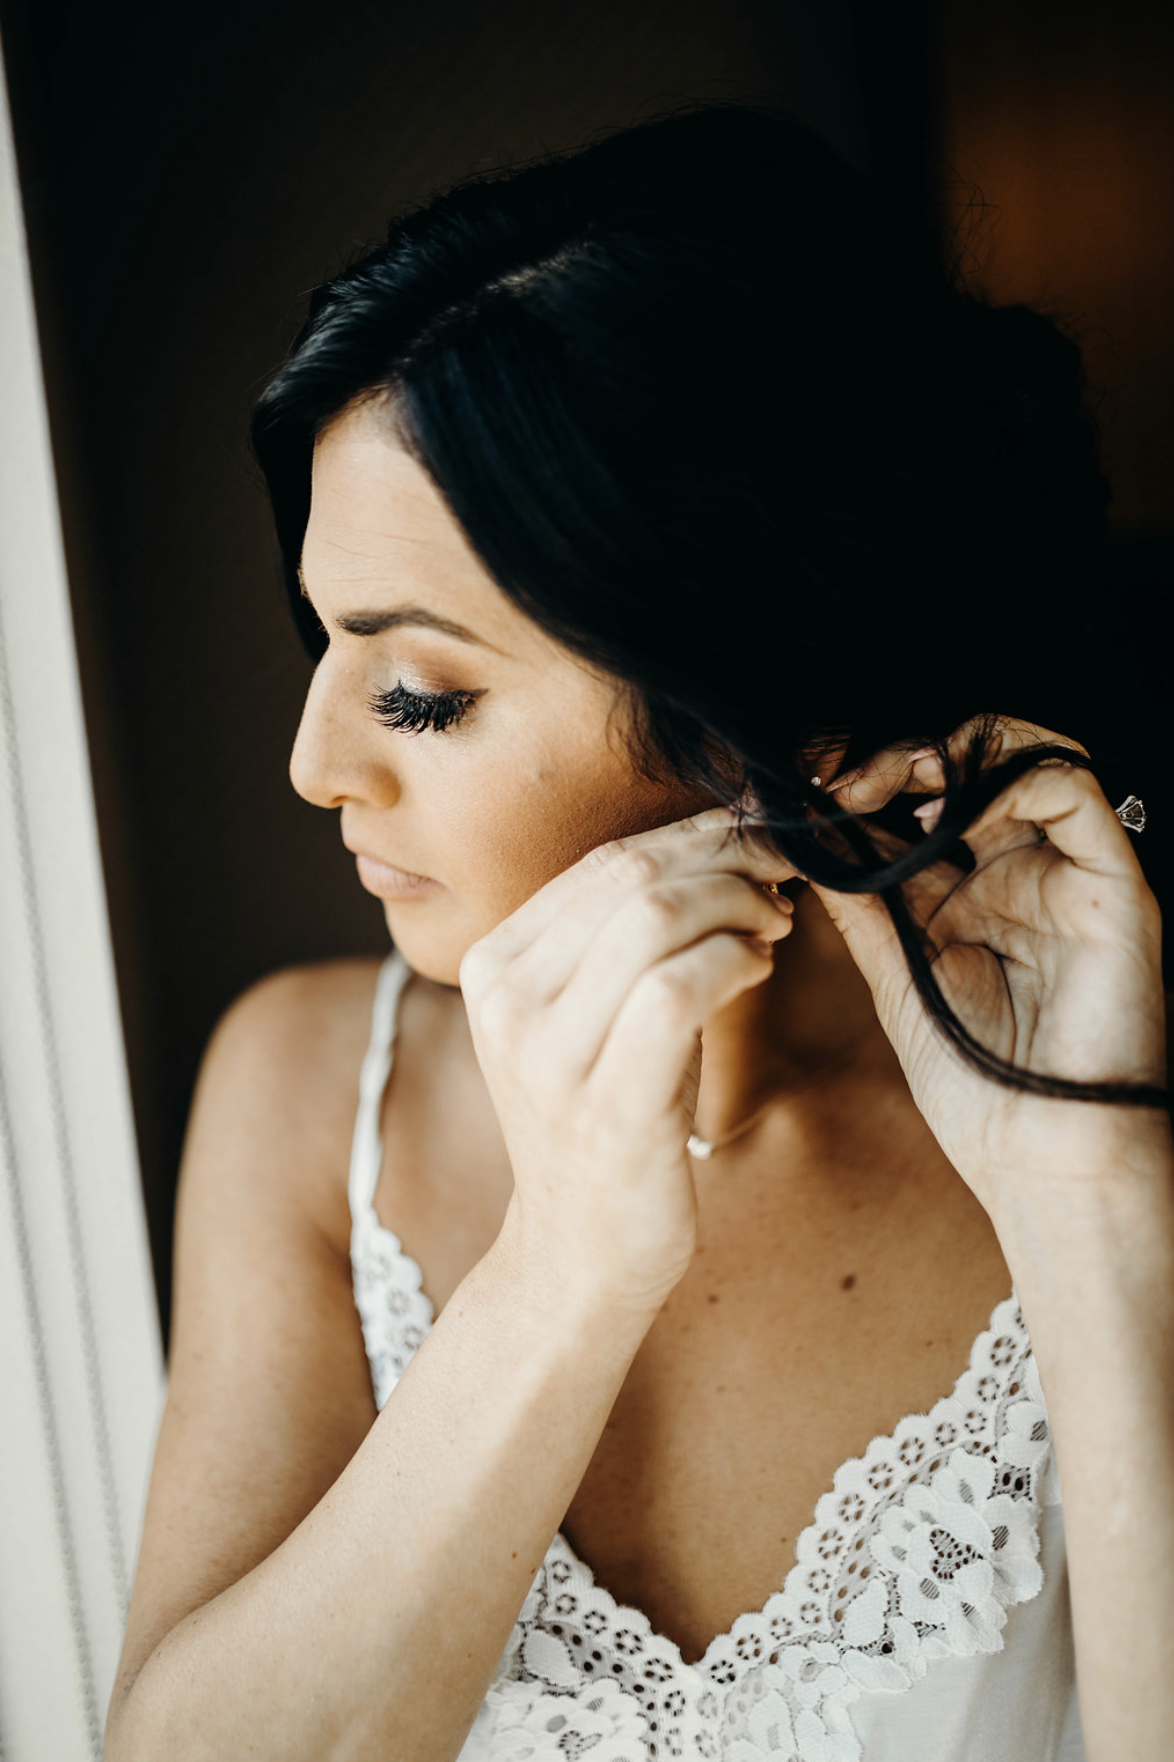 Valerie-and-TJ-McConnell-Wedding-Coordination-by-Cassandra-Clair-Event-Prep-5.png